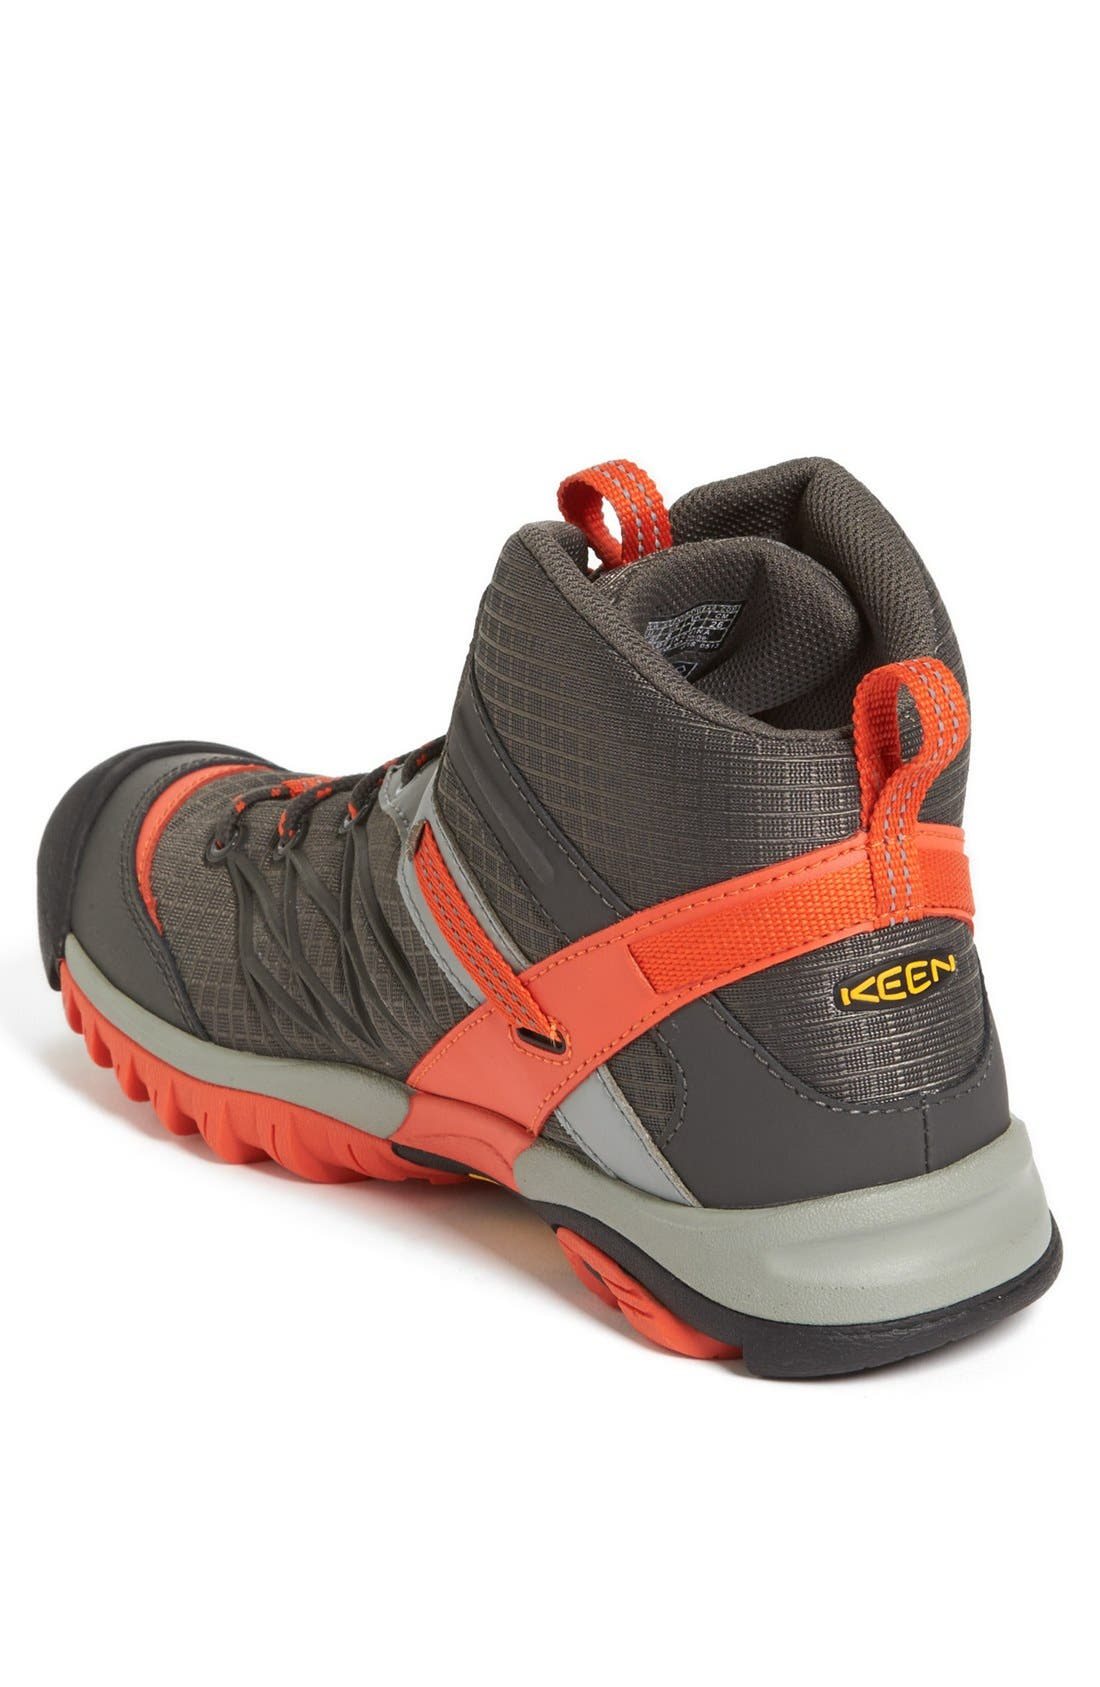 Alternate Image 2  - Keen 'Marshall Mid WP' Hiking Boot (Men)